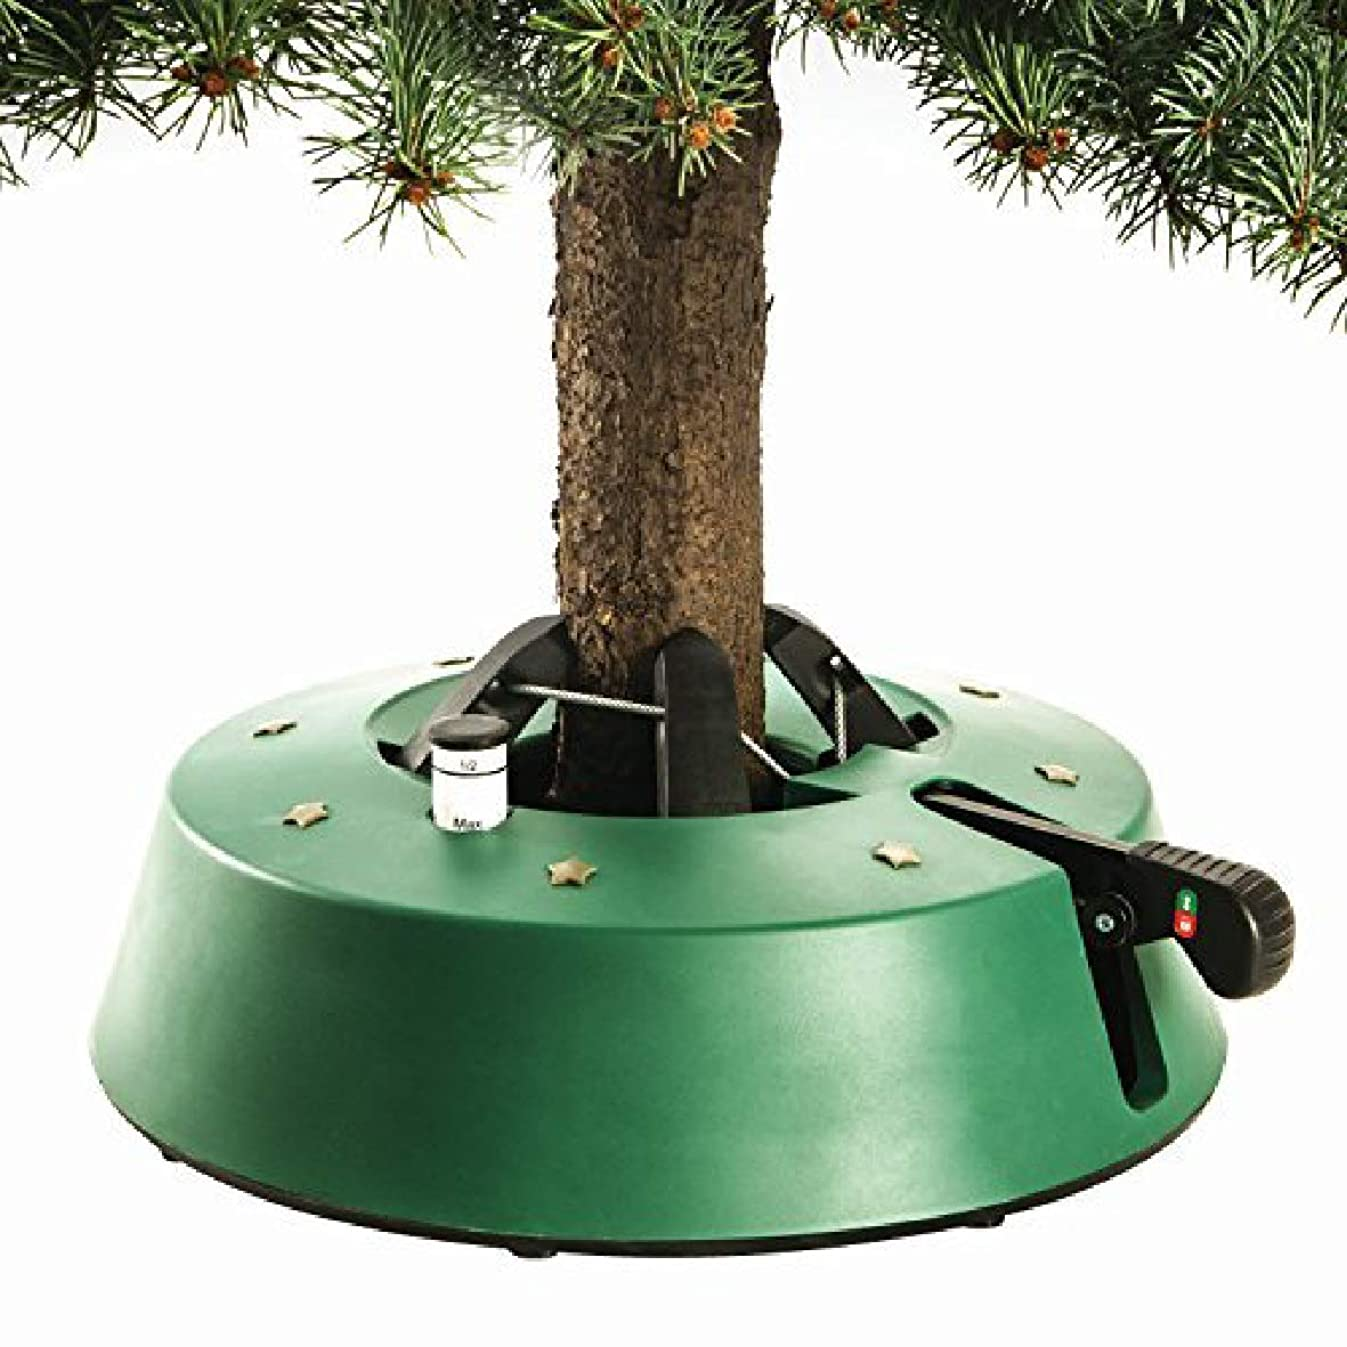 EasyGoProducts EGP-TREE-002 InstaTree XXL Fast & Easy Christmas Stand-Holds Tree up to 14.5 Feet Tall with 1.5